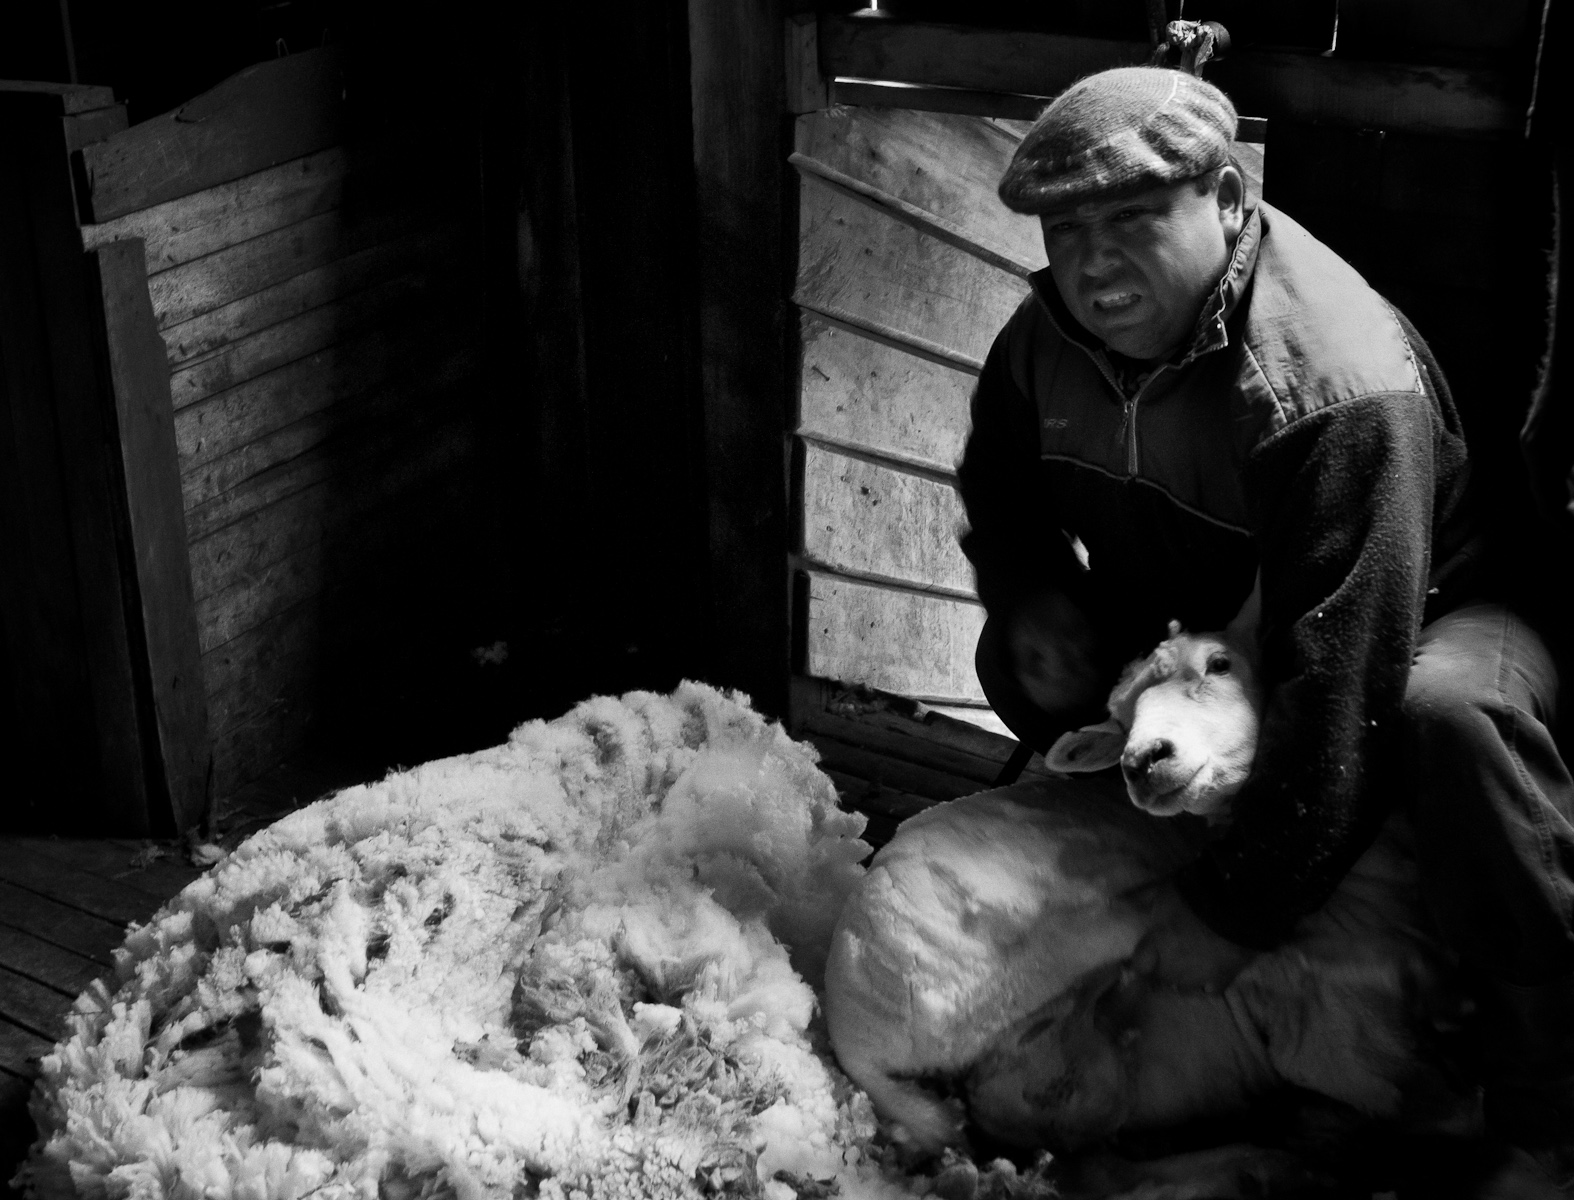 Sheep shearer demonstrates his craft, Estancias de las Hijas, Argentina